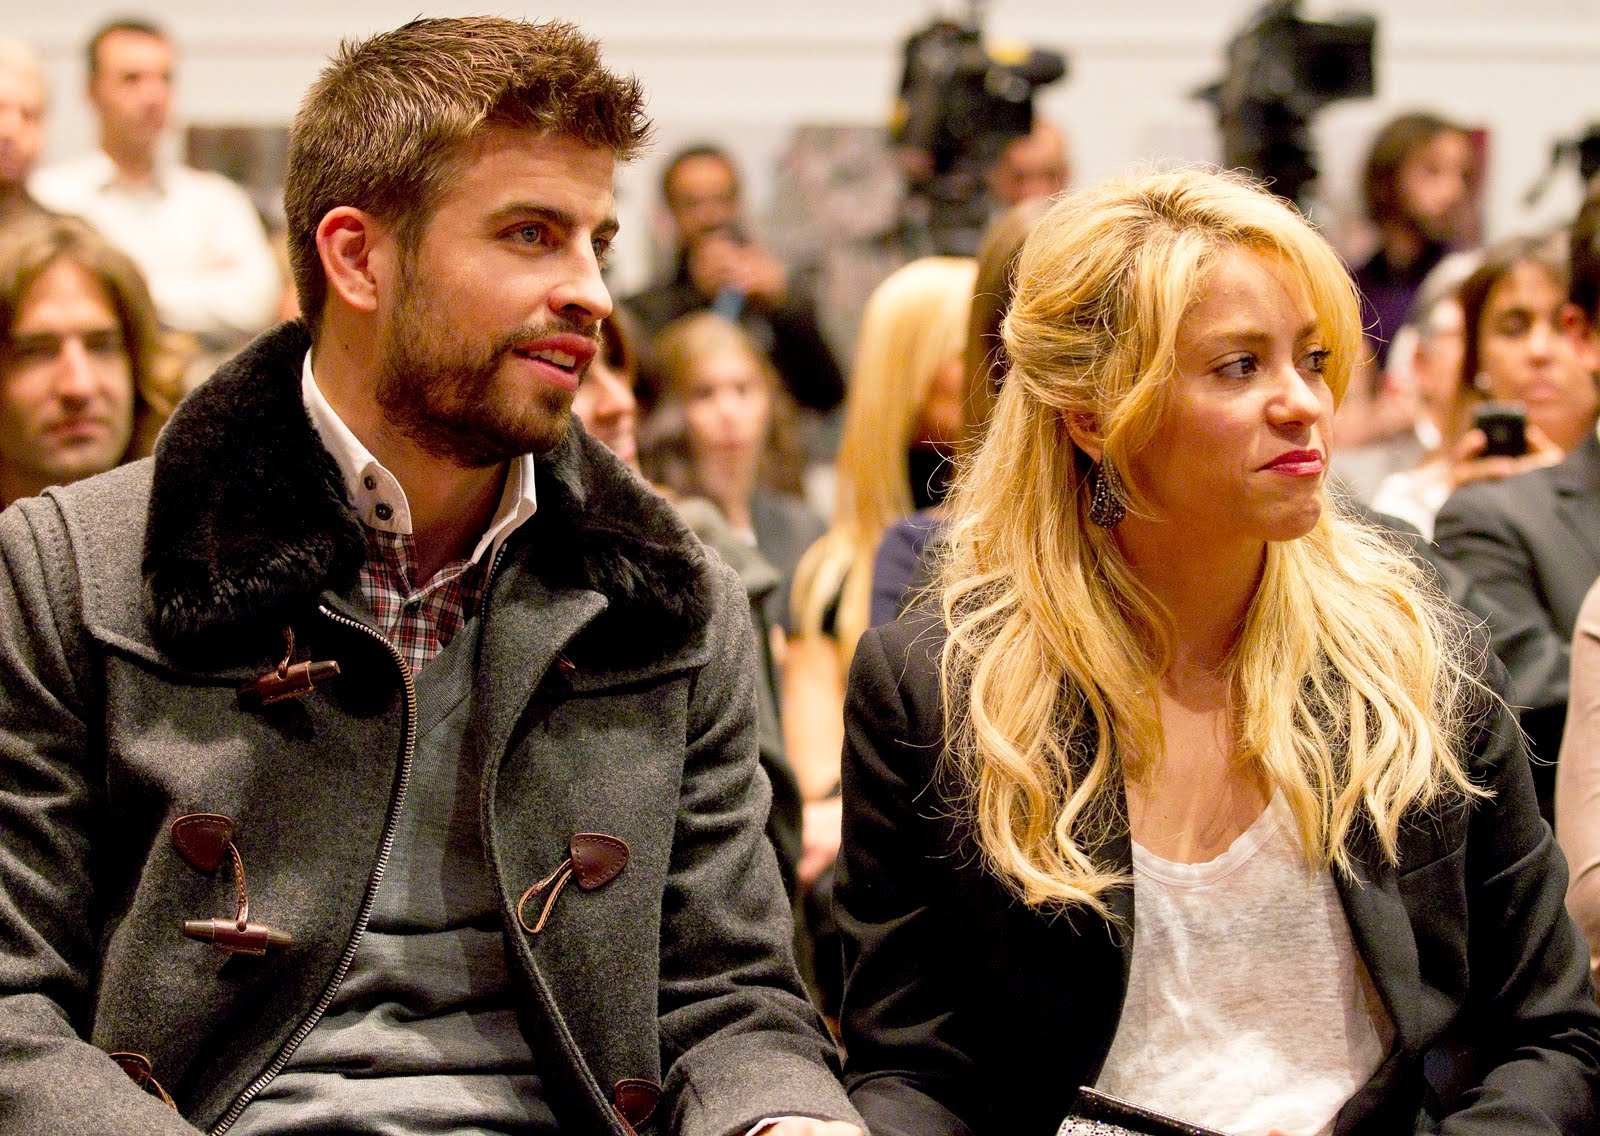 Shakira and Pique. - Page 3 Shakira-piqu-mother-gerard-pique-27488486-1600-1136